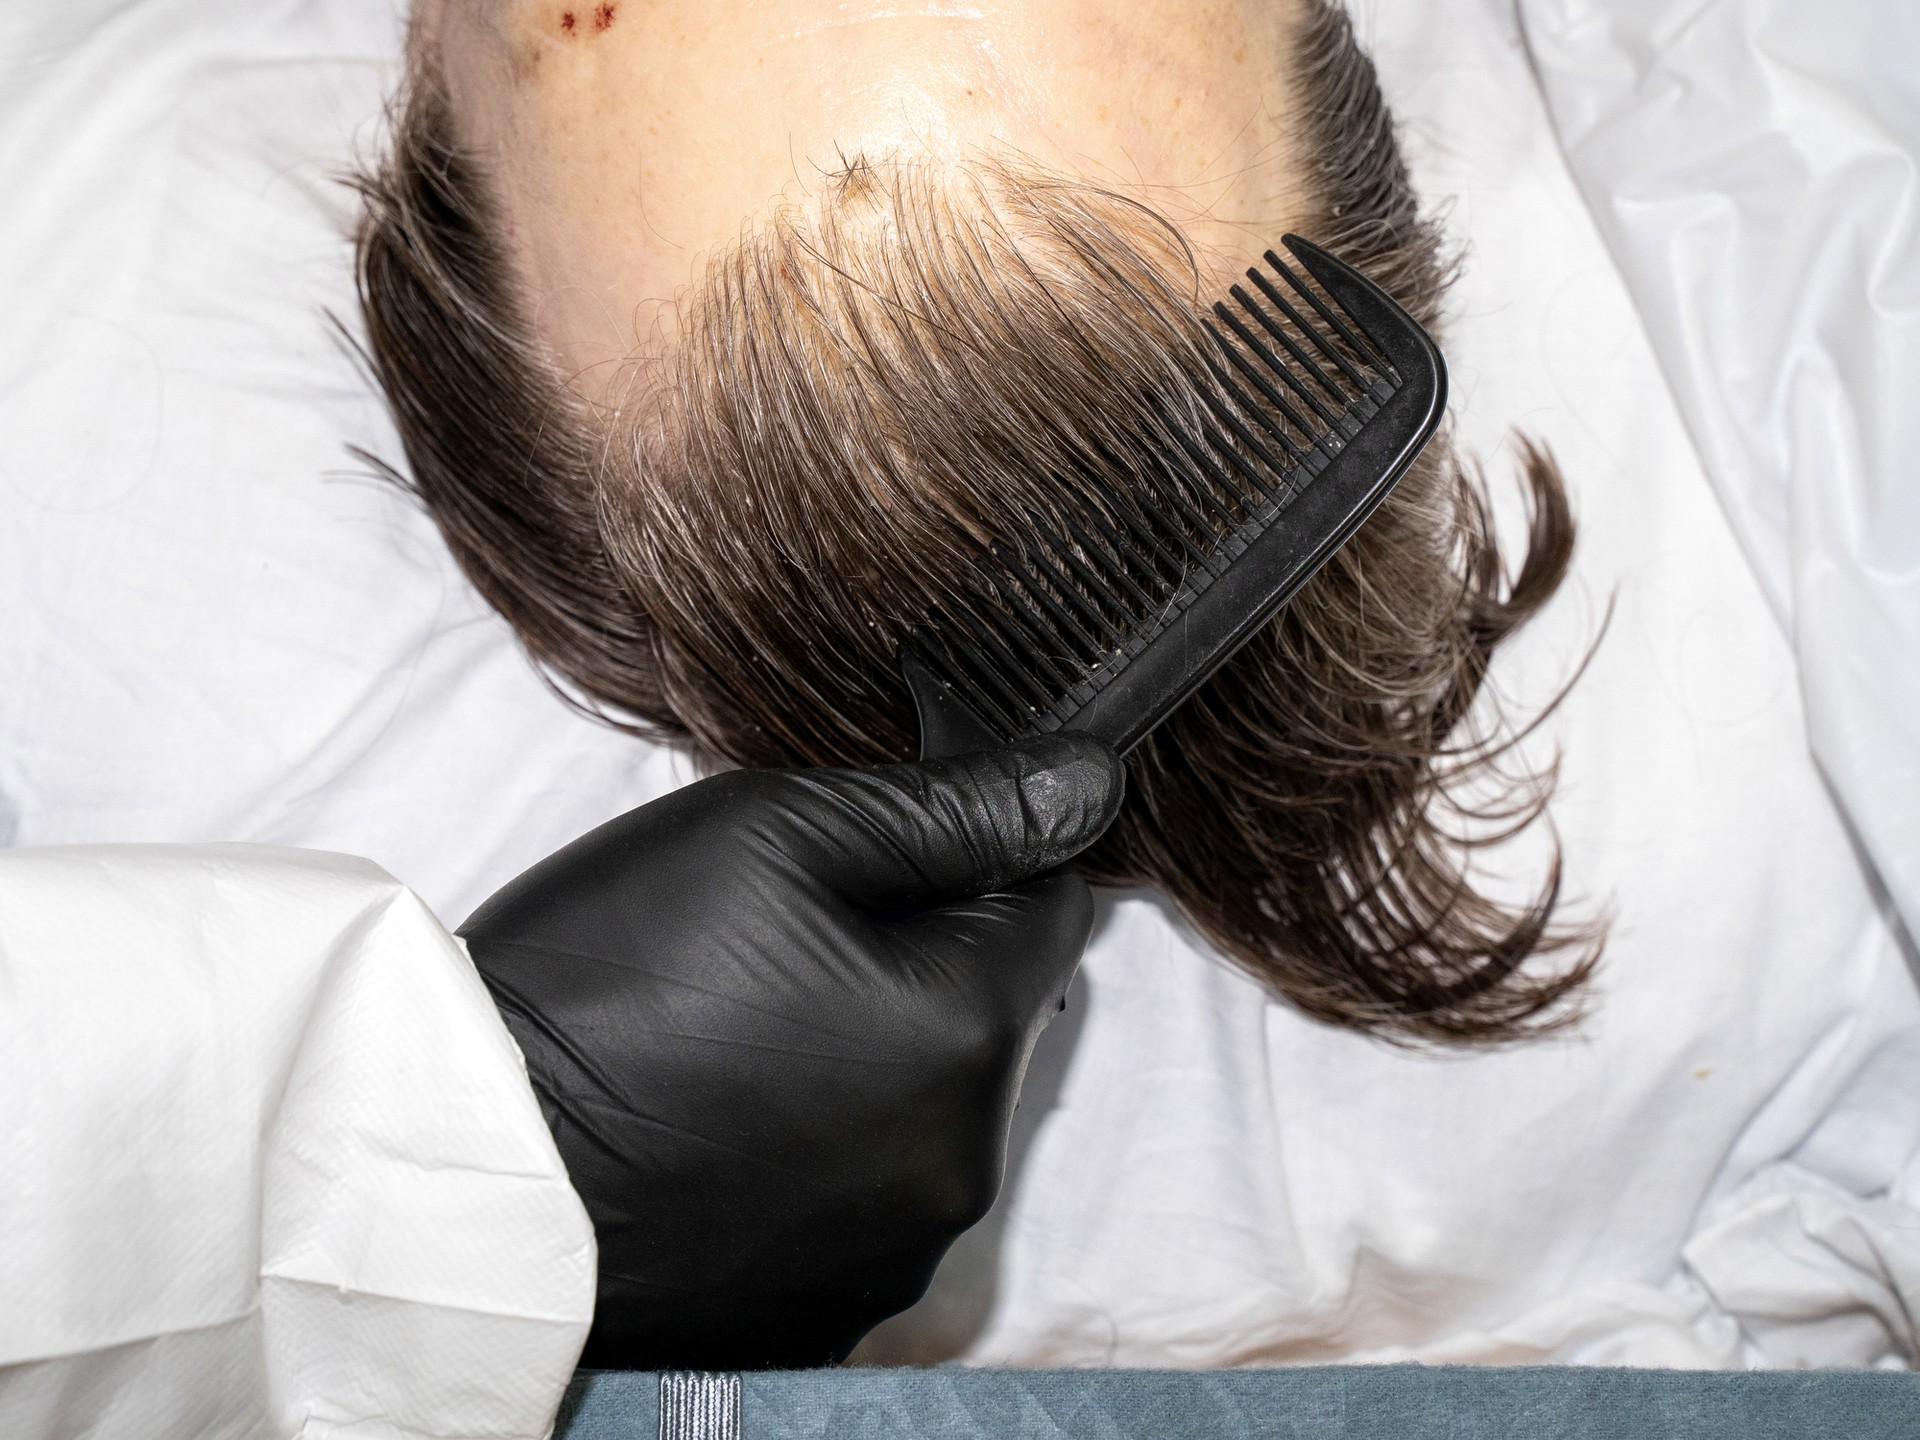 Someone combing the hair of a corpse